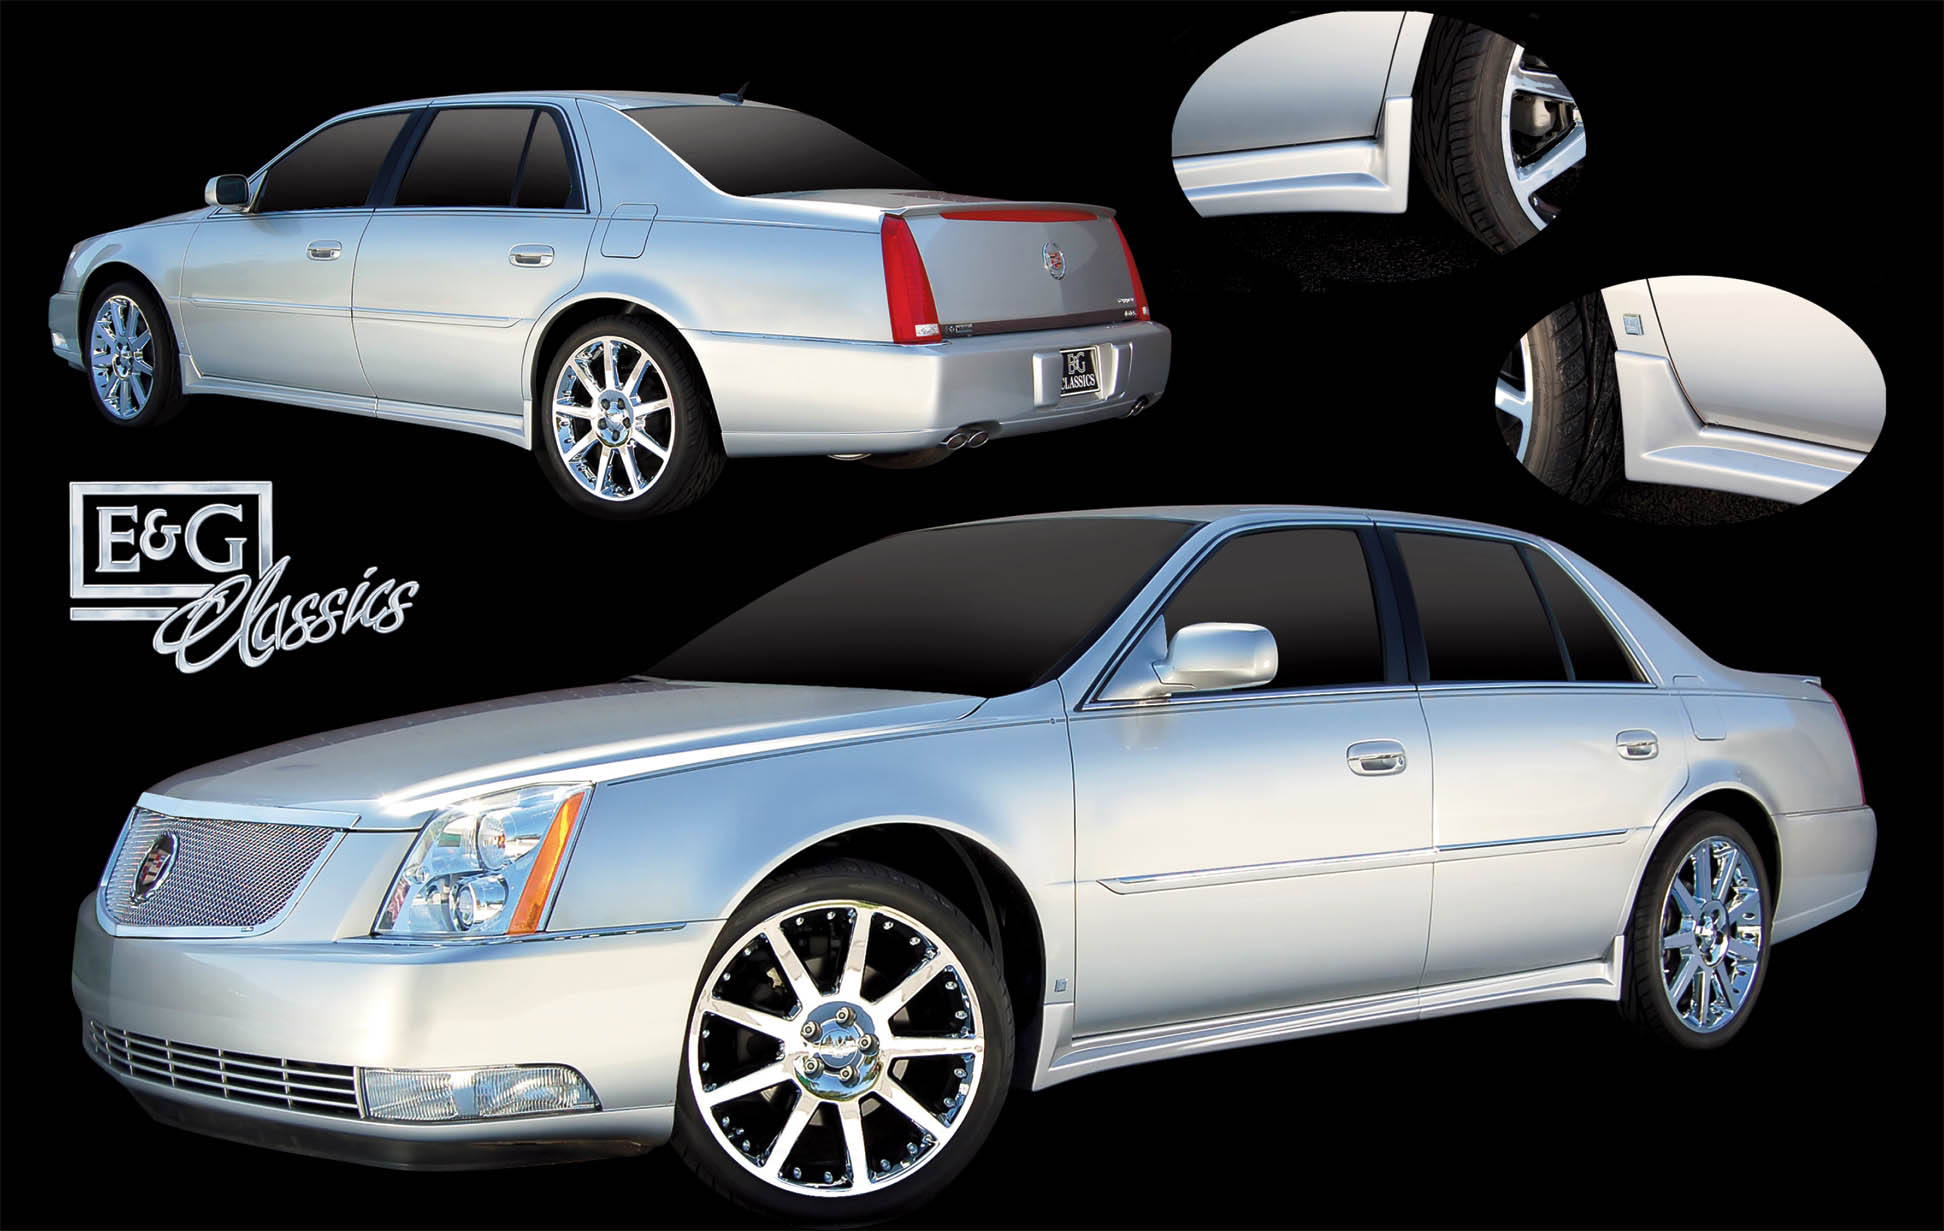 2008 Cadillac Cts Body Kit >> E&G Classics Cadillac CTS Grille Wing EGX Body Kit